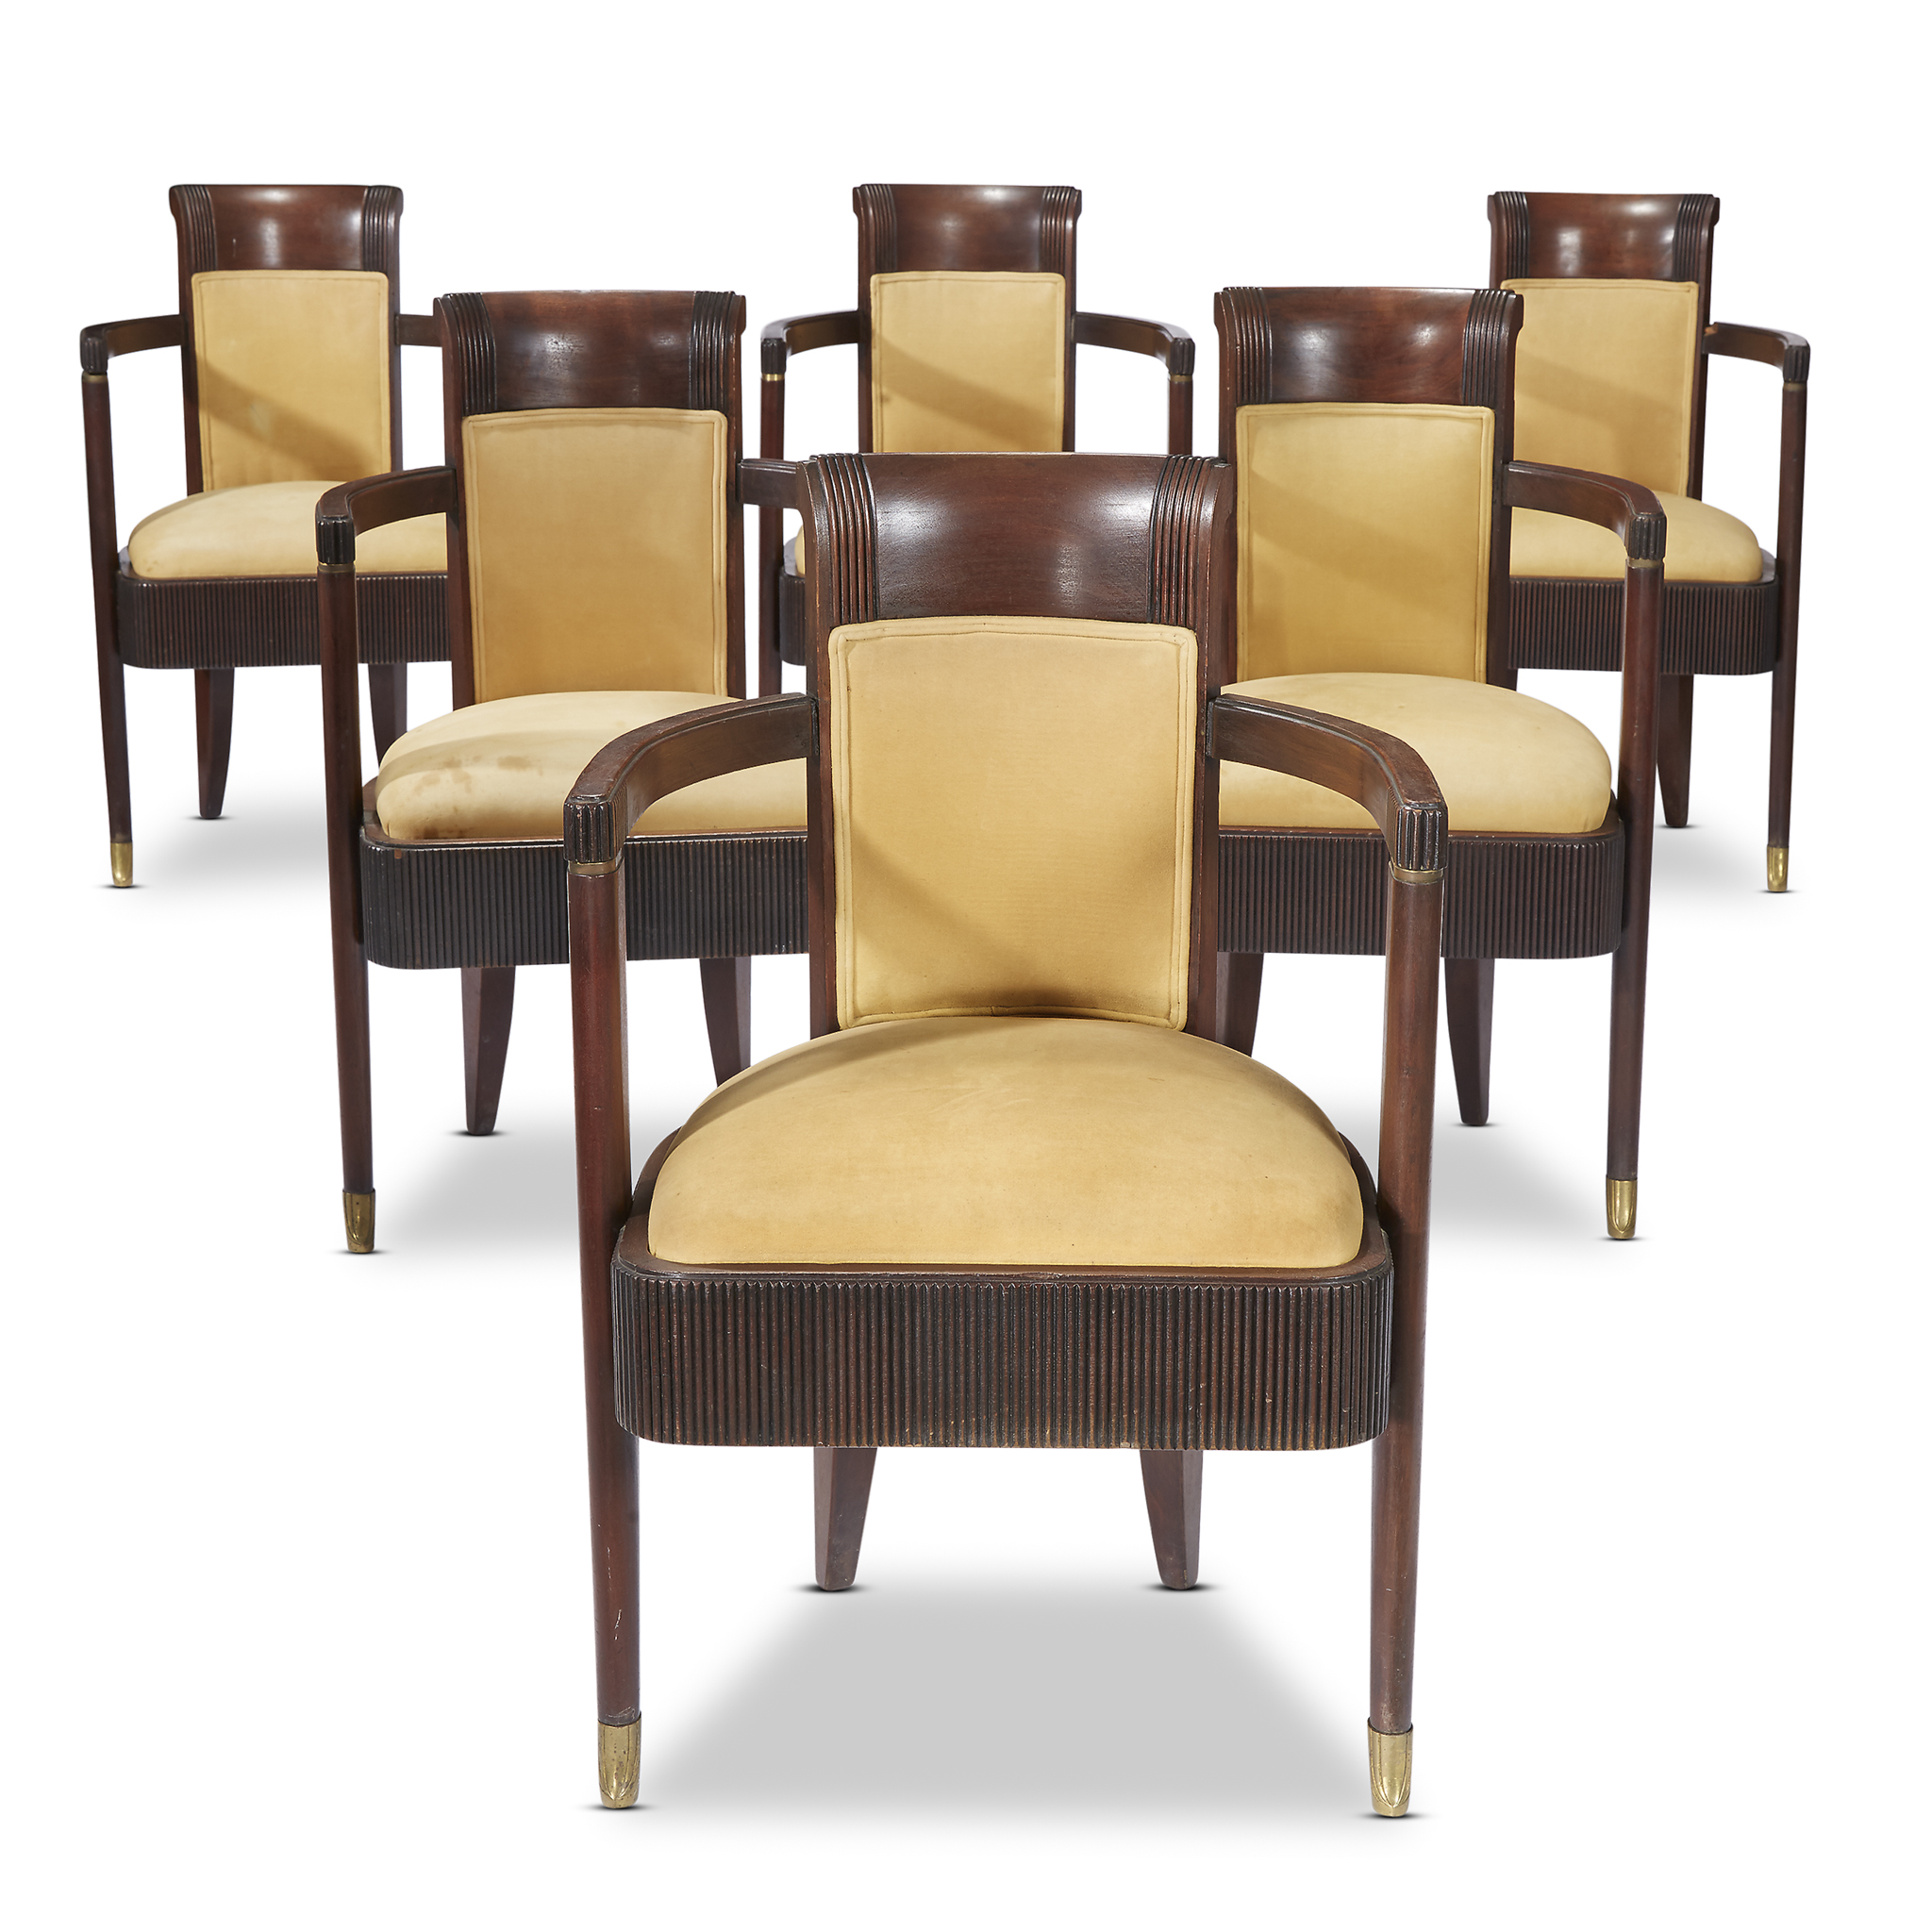 Art Deco Dining Chairs A Set Of Six Art Deco Dining Chairs From The S S Normandie Pierre Patout French 1879 1965 For Neuveu Nelson Circa 1932